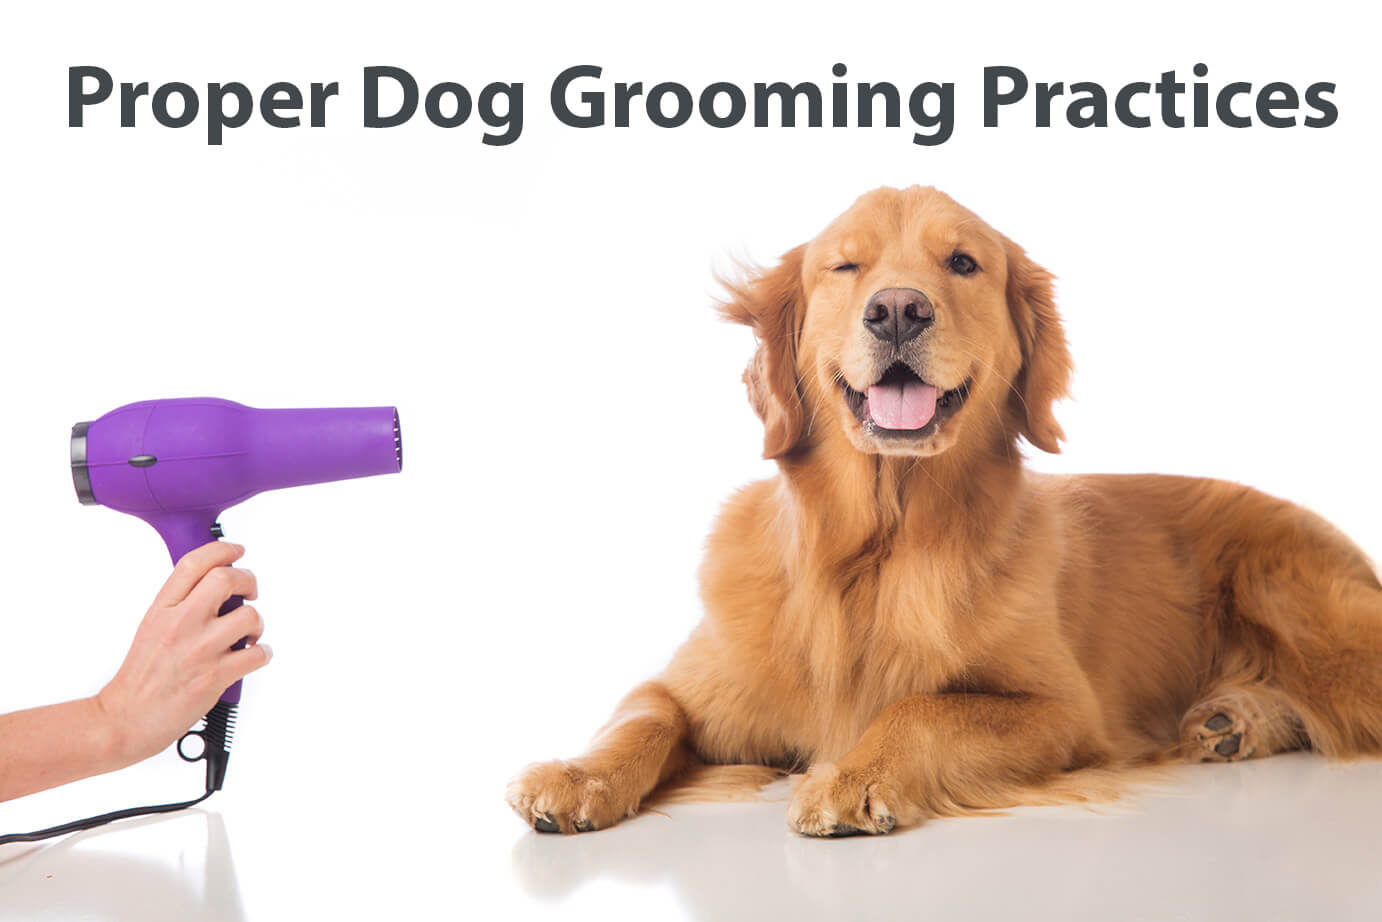 dog grooming practices